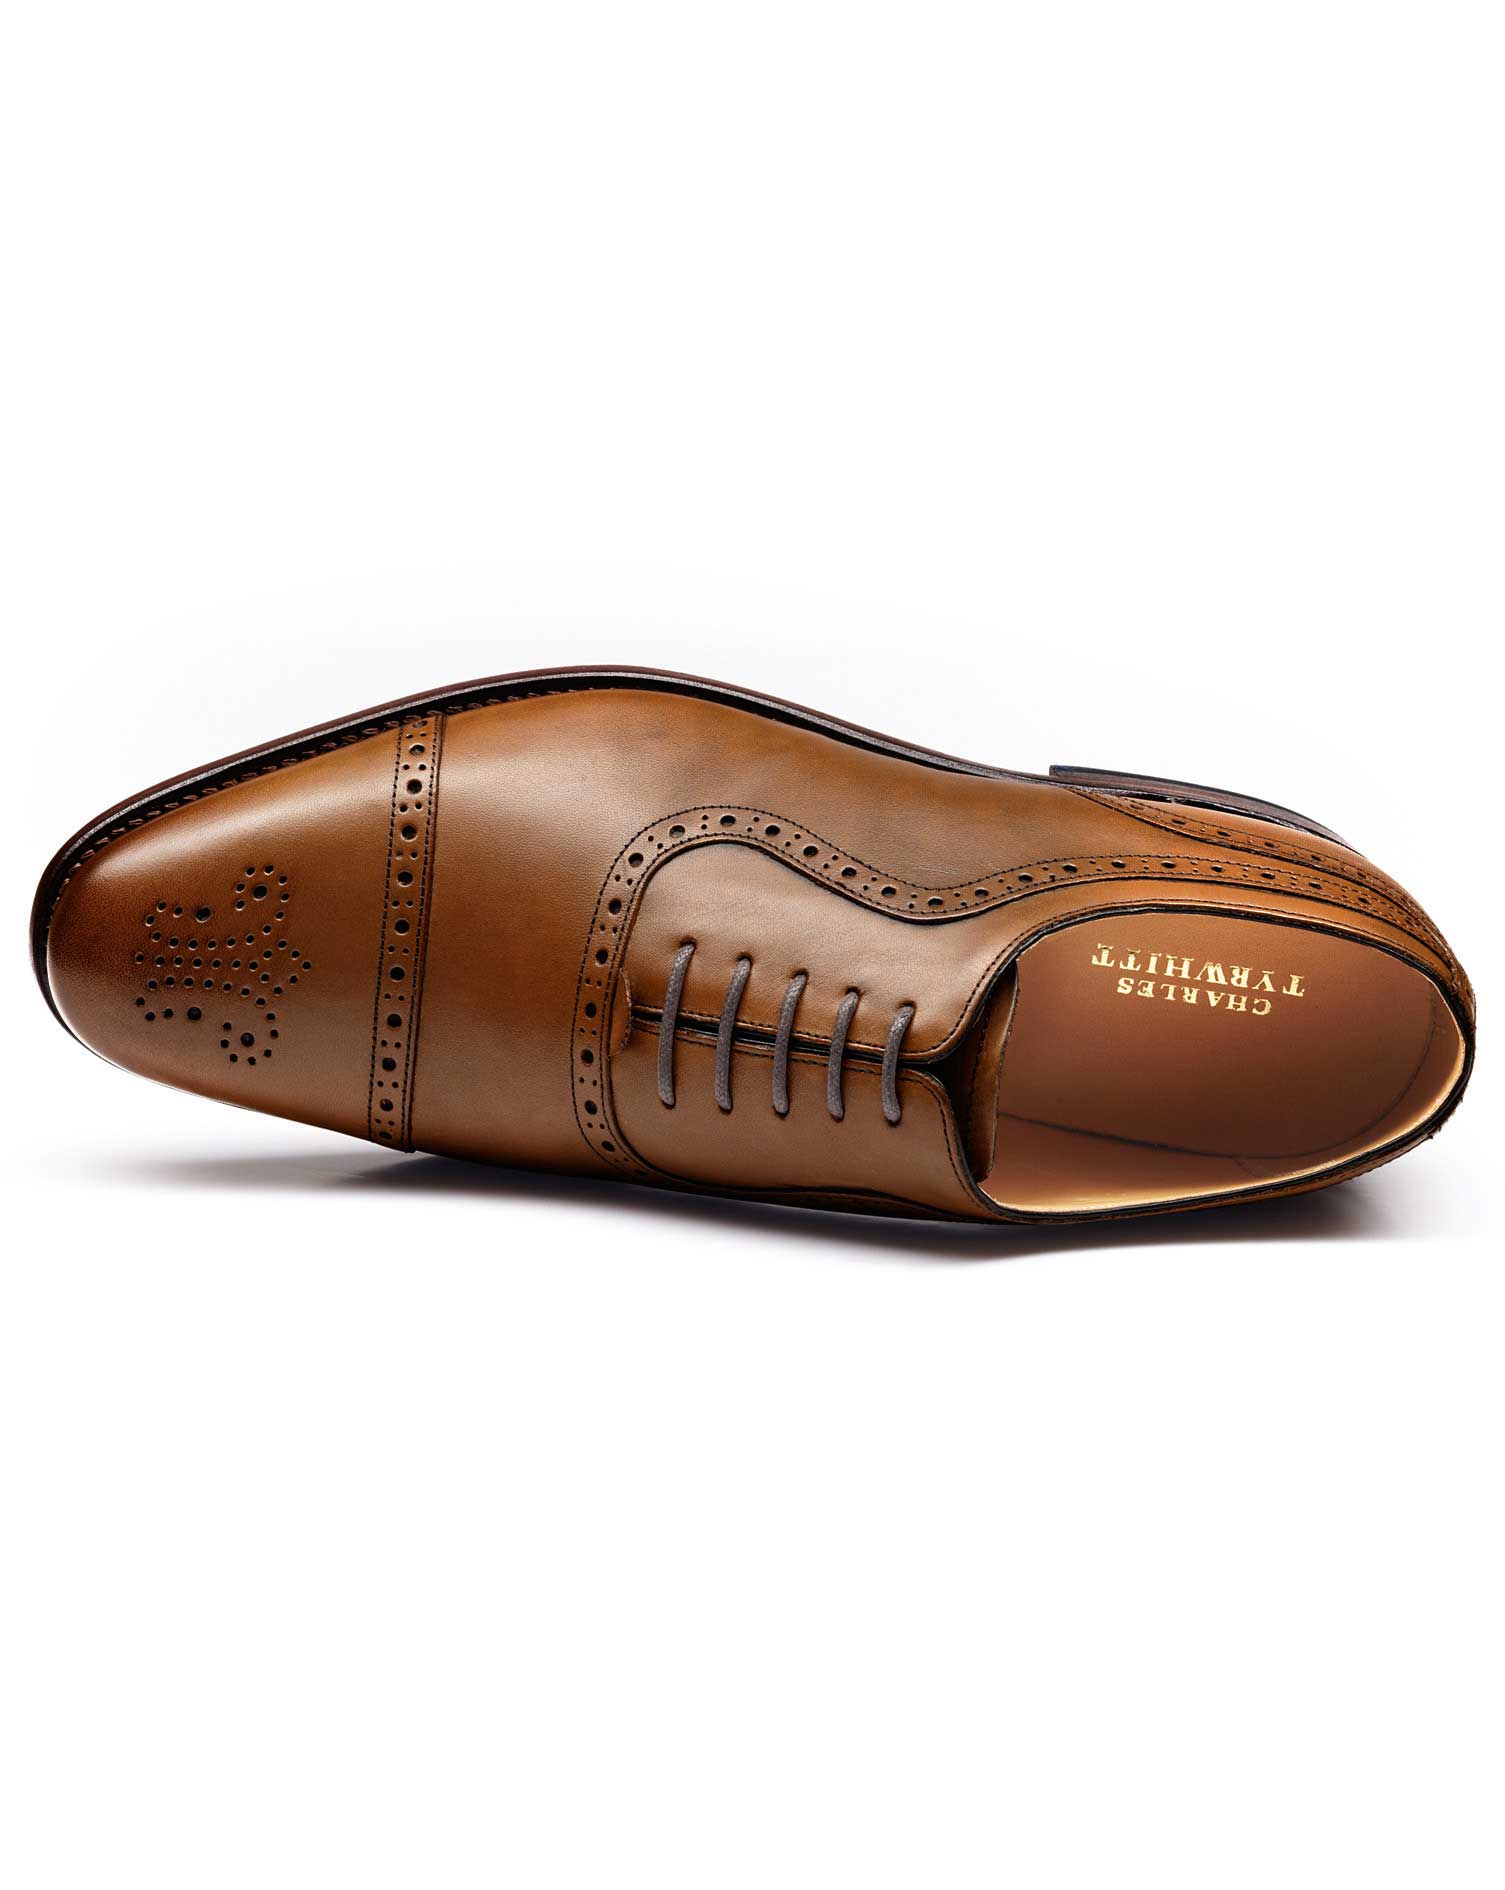 Brown Goodyear Welted Oxford Brogue Shoe Size 8 R by Charles Tyrwhitt